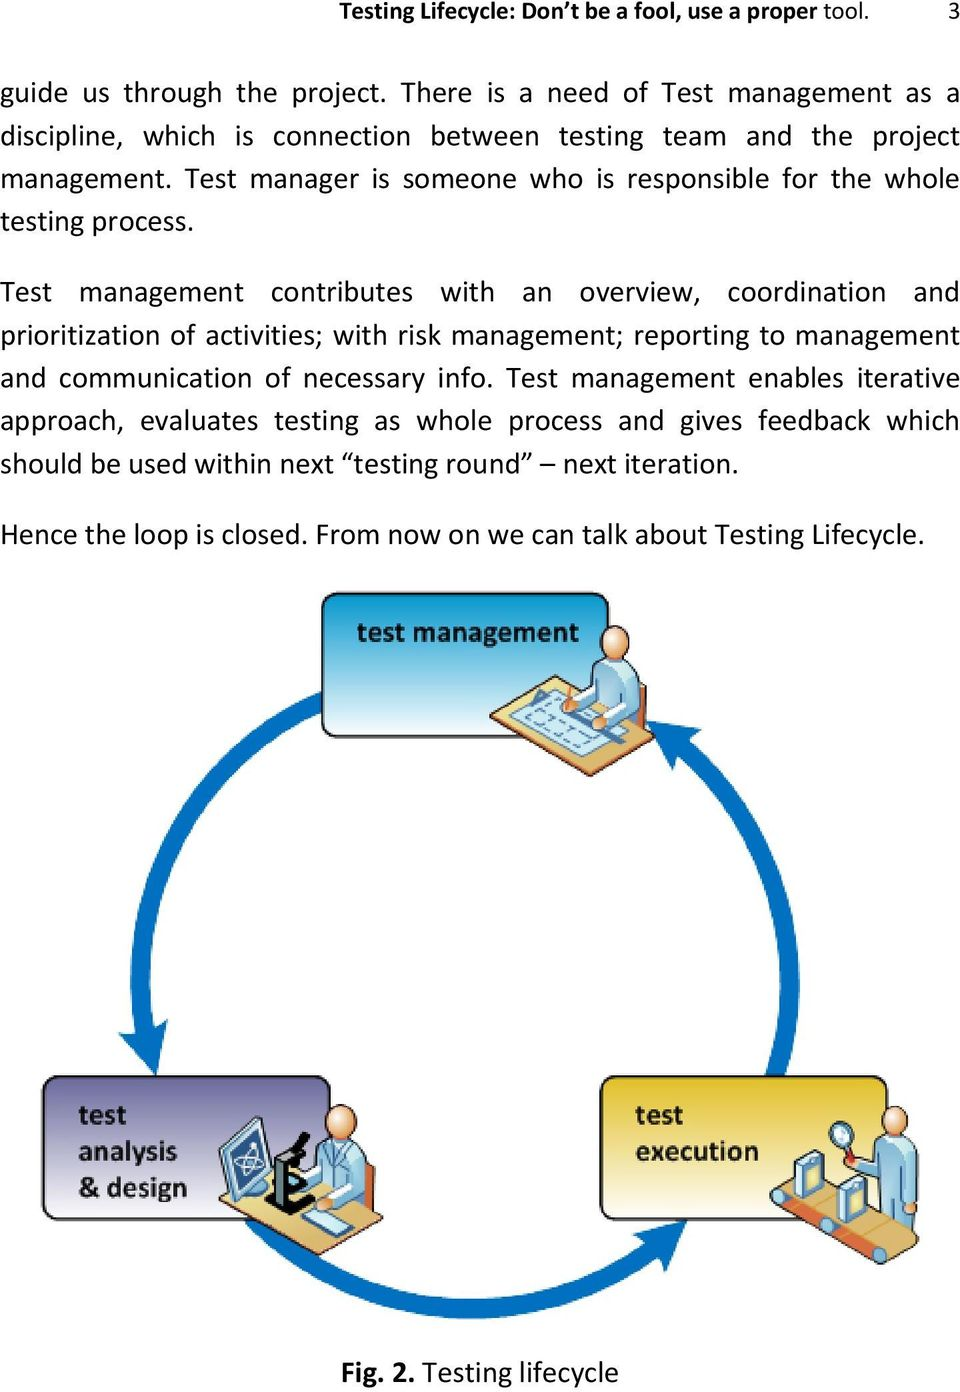 Testing Lifecycle: Don t be a fool, use a proper tool  - PDF